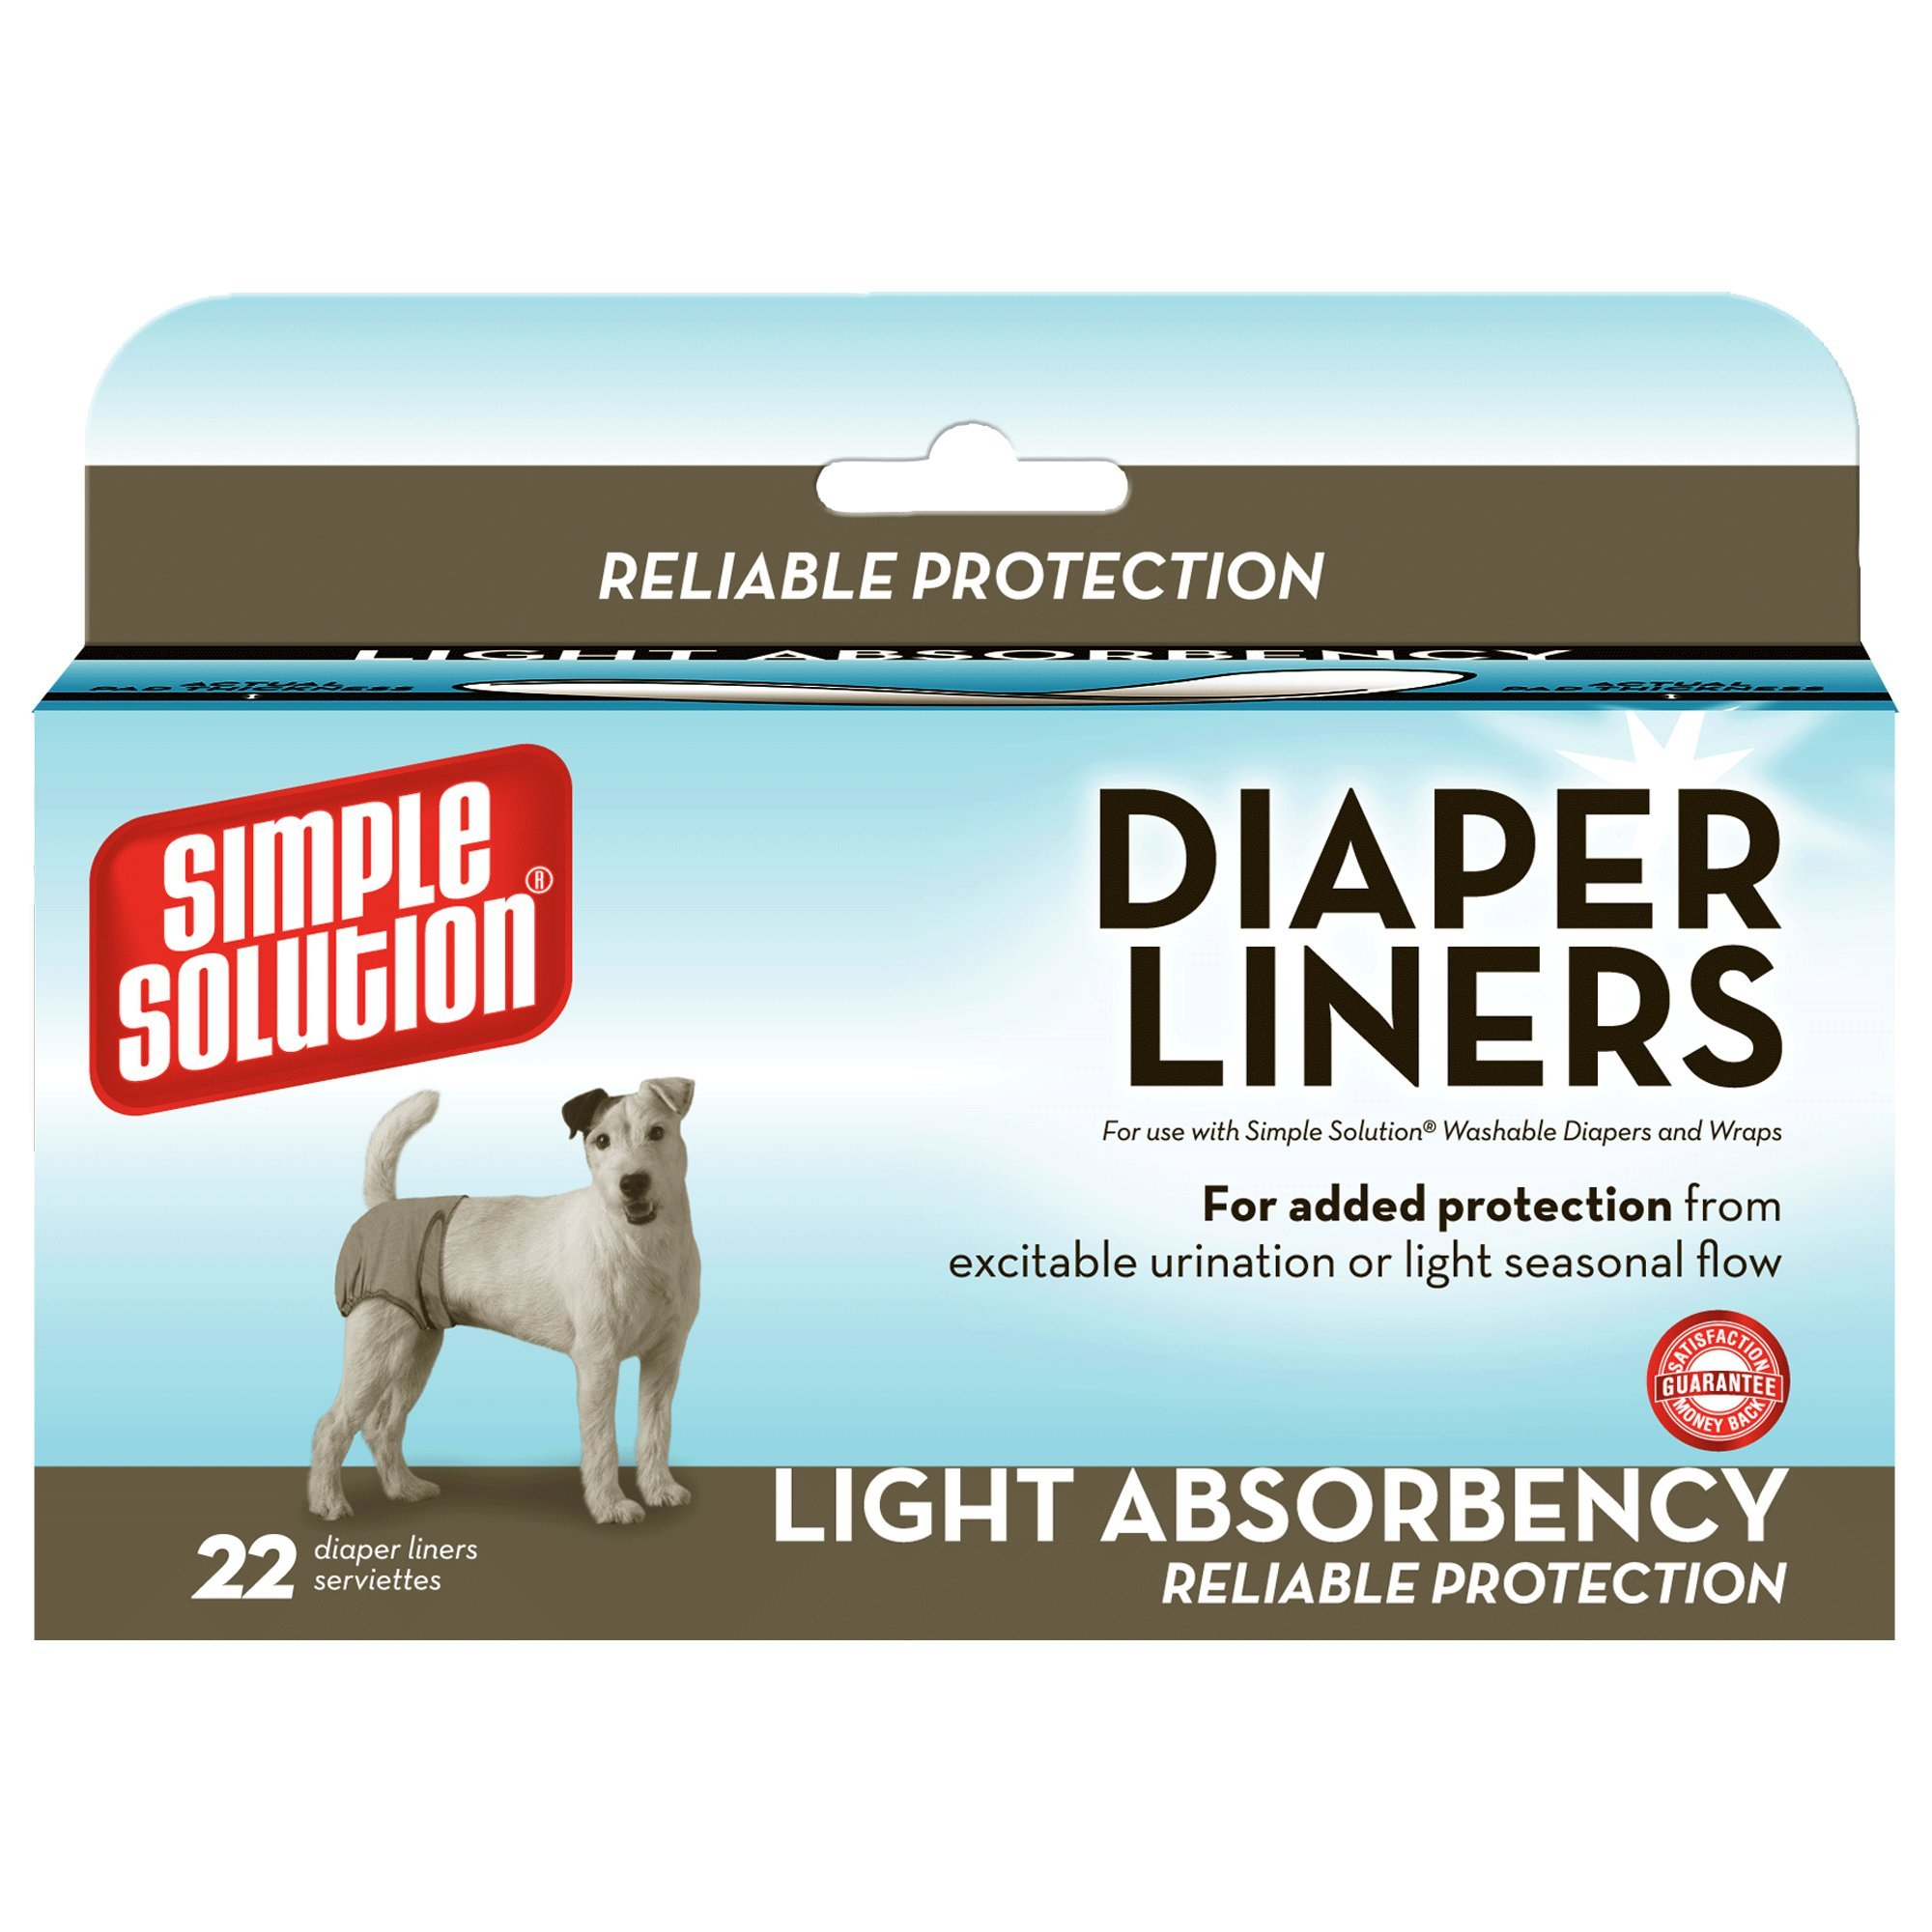 Simple Solution Disposable Liners Light Absorbency, 22 Count